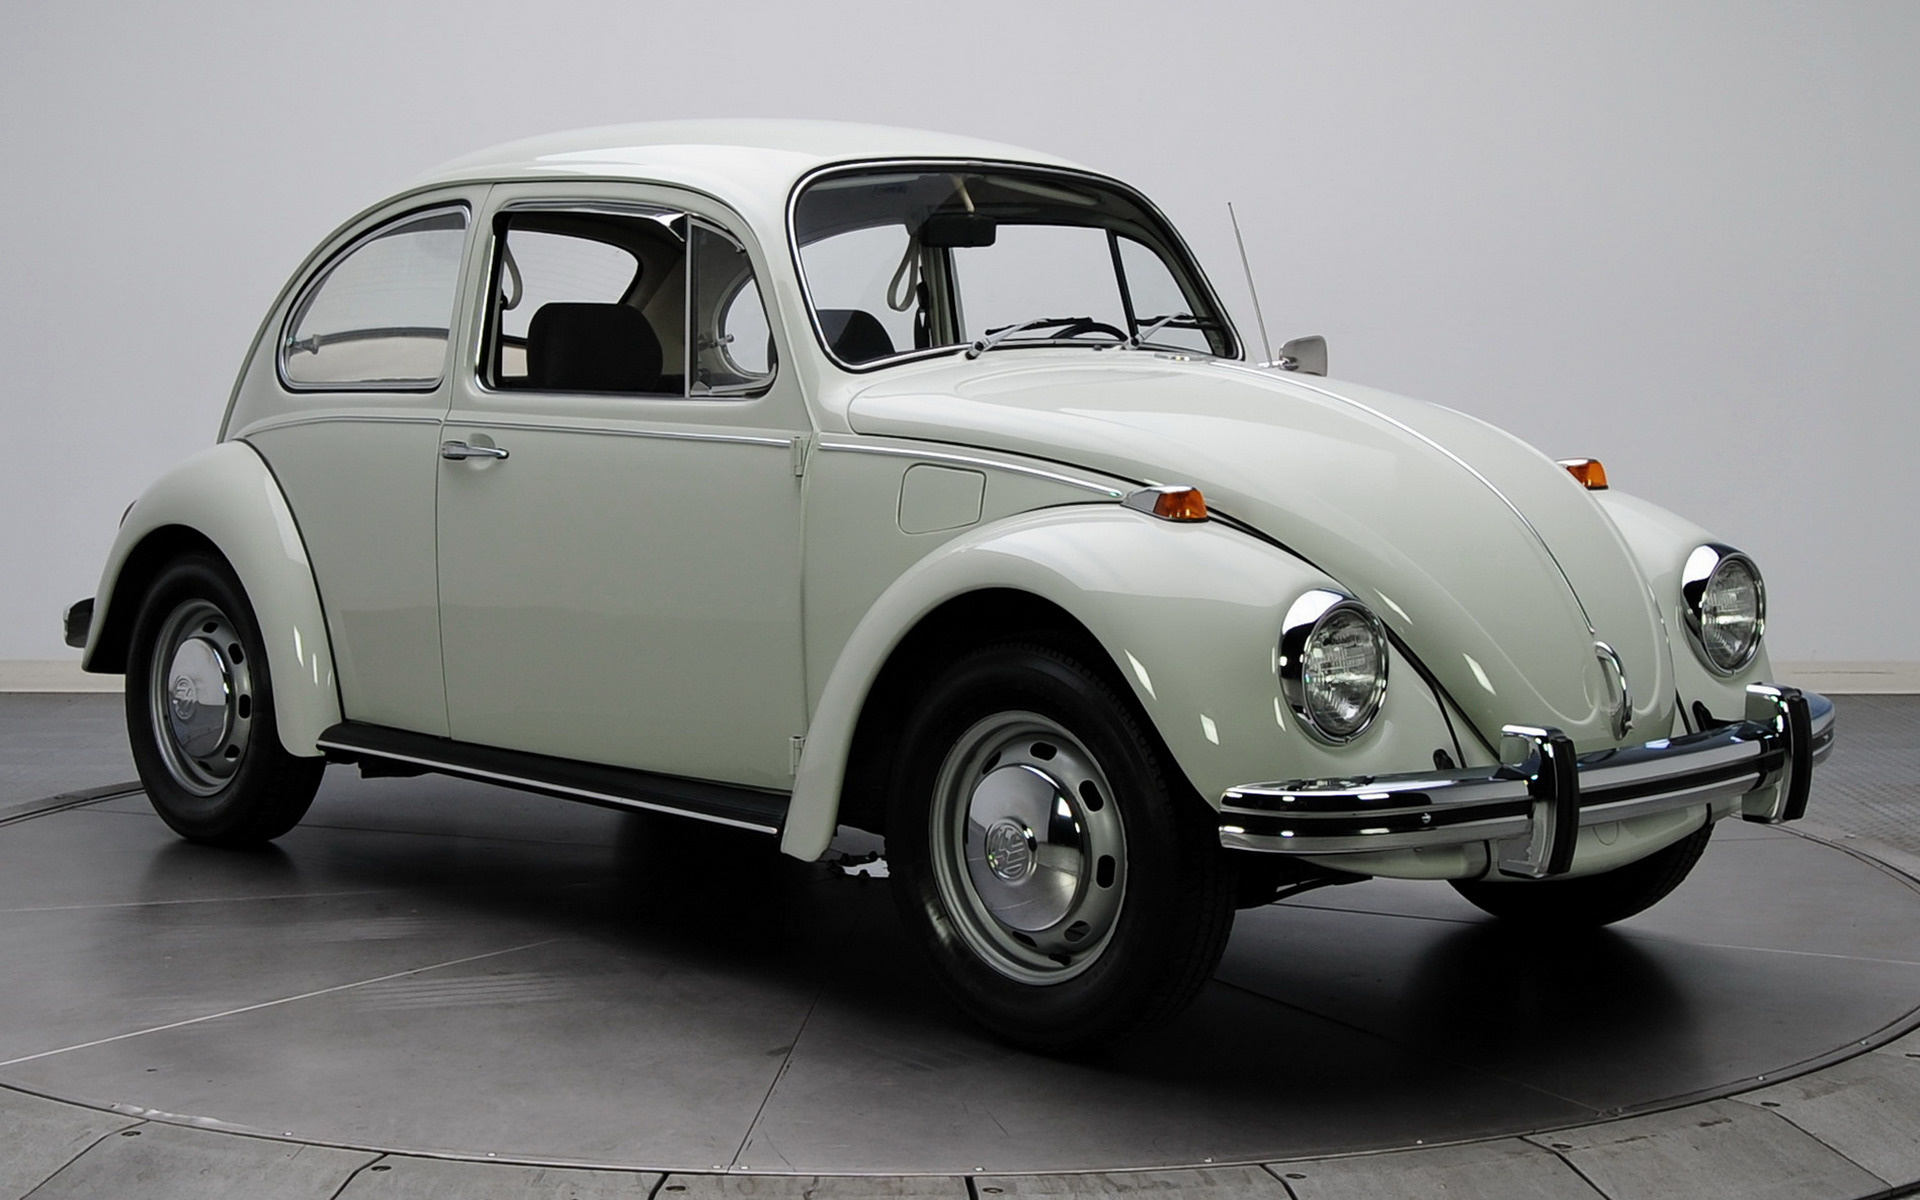 1968 Volkswagen Beetle - Wallpapers and HD Images | Car Pixel